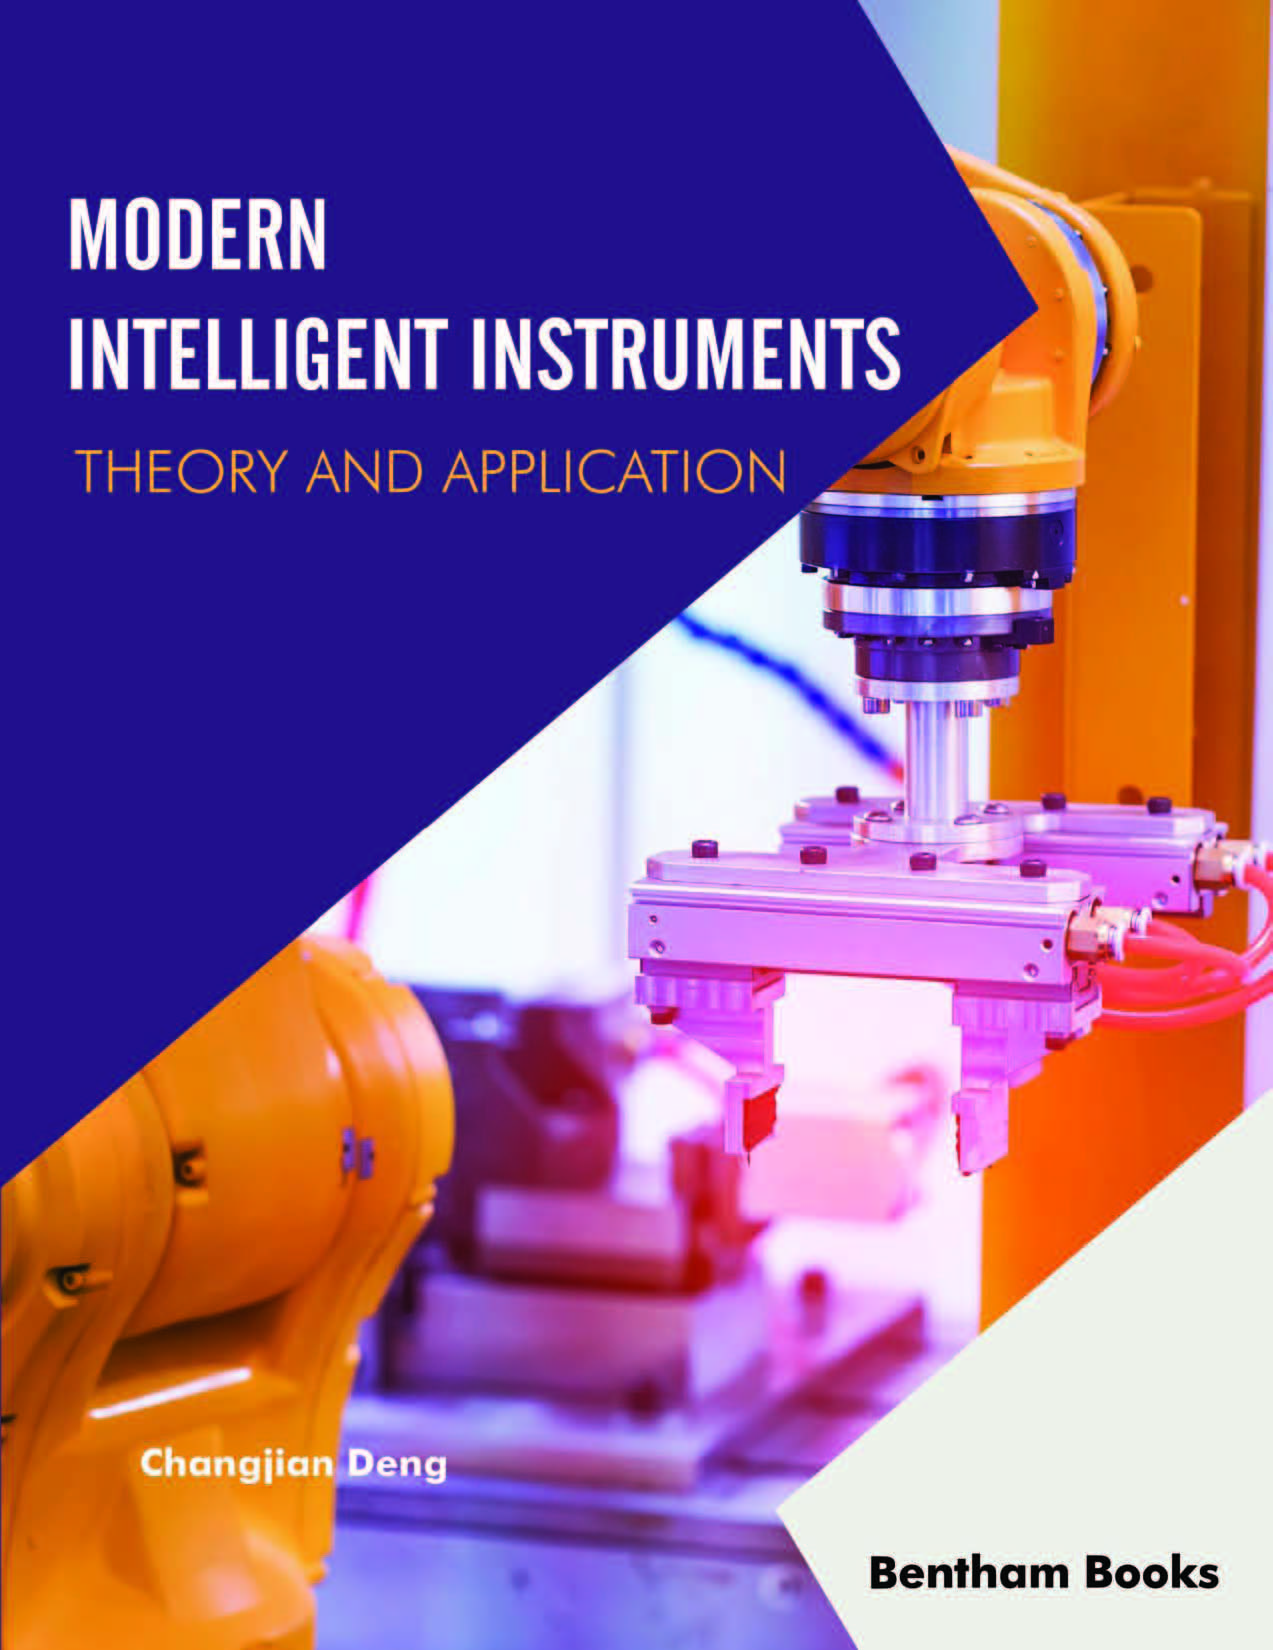 Modern Intelligent Instruments - Theory and Application